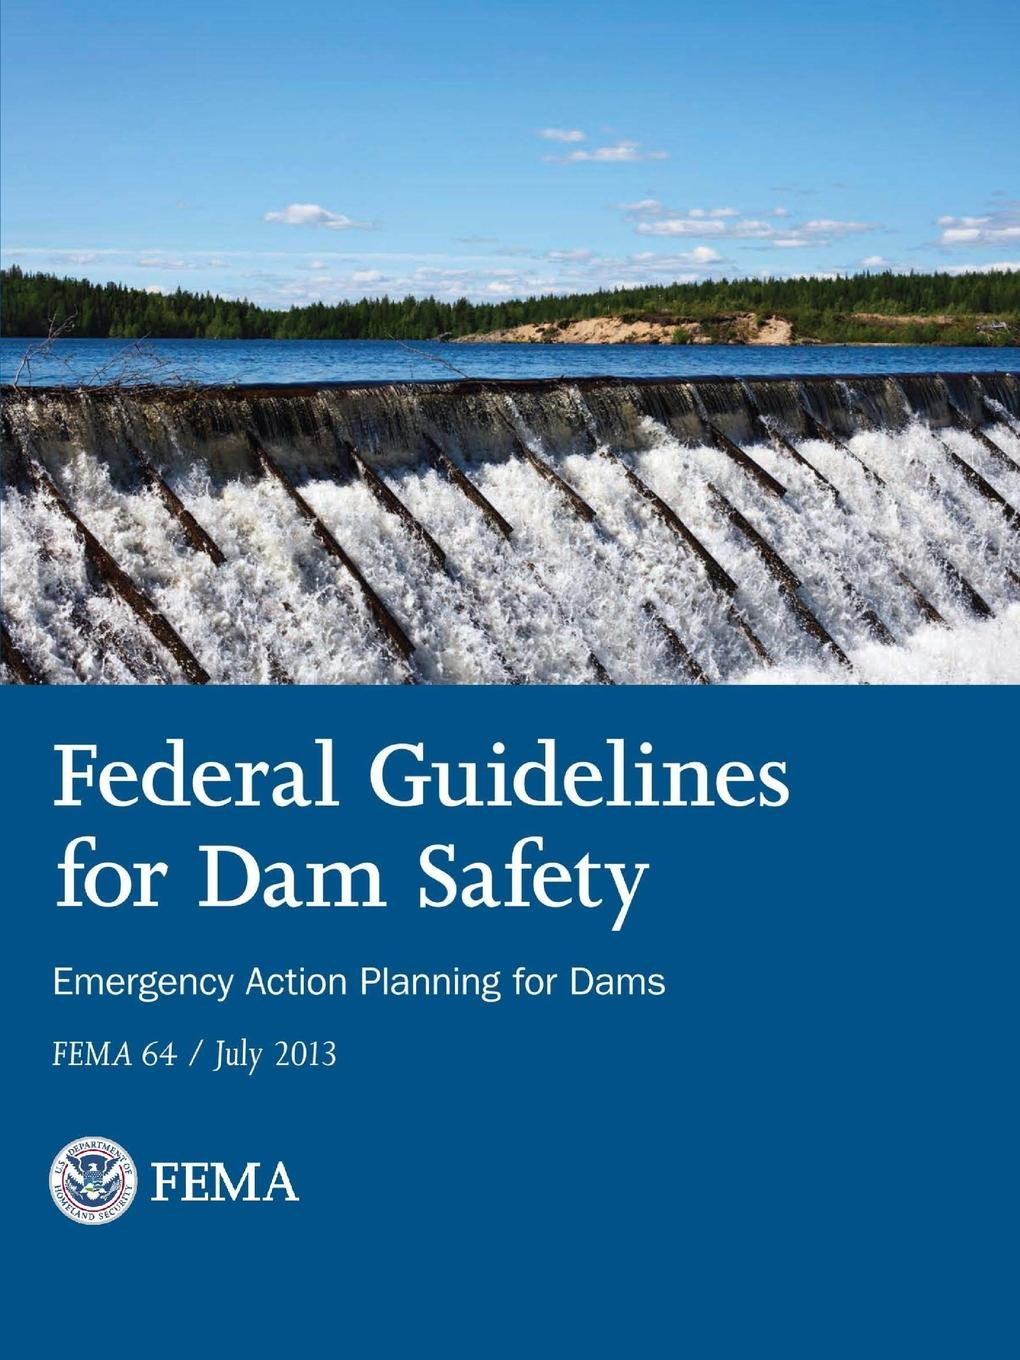 Federal Emergency Management Age (FEMA) Federal Guidelines for Dam Safety - Emergency Action Planning for Dams the damage manual